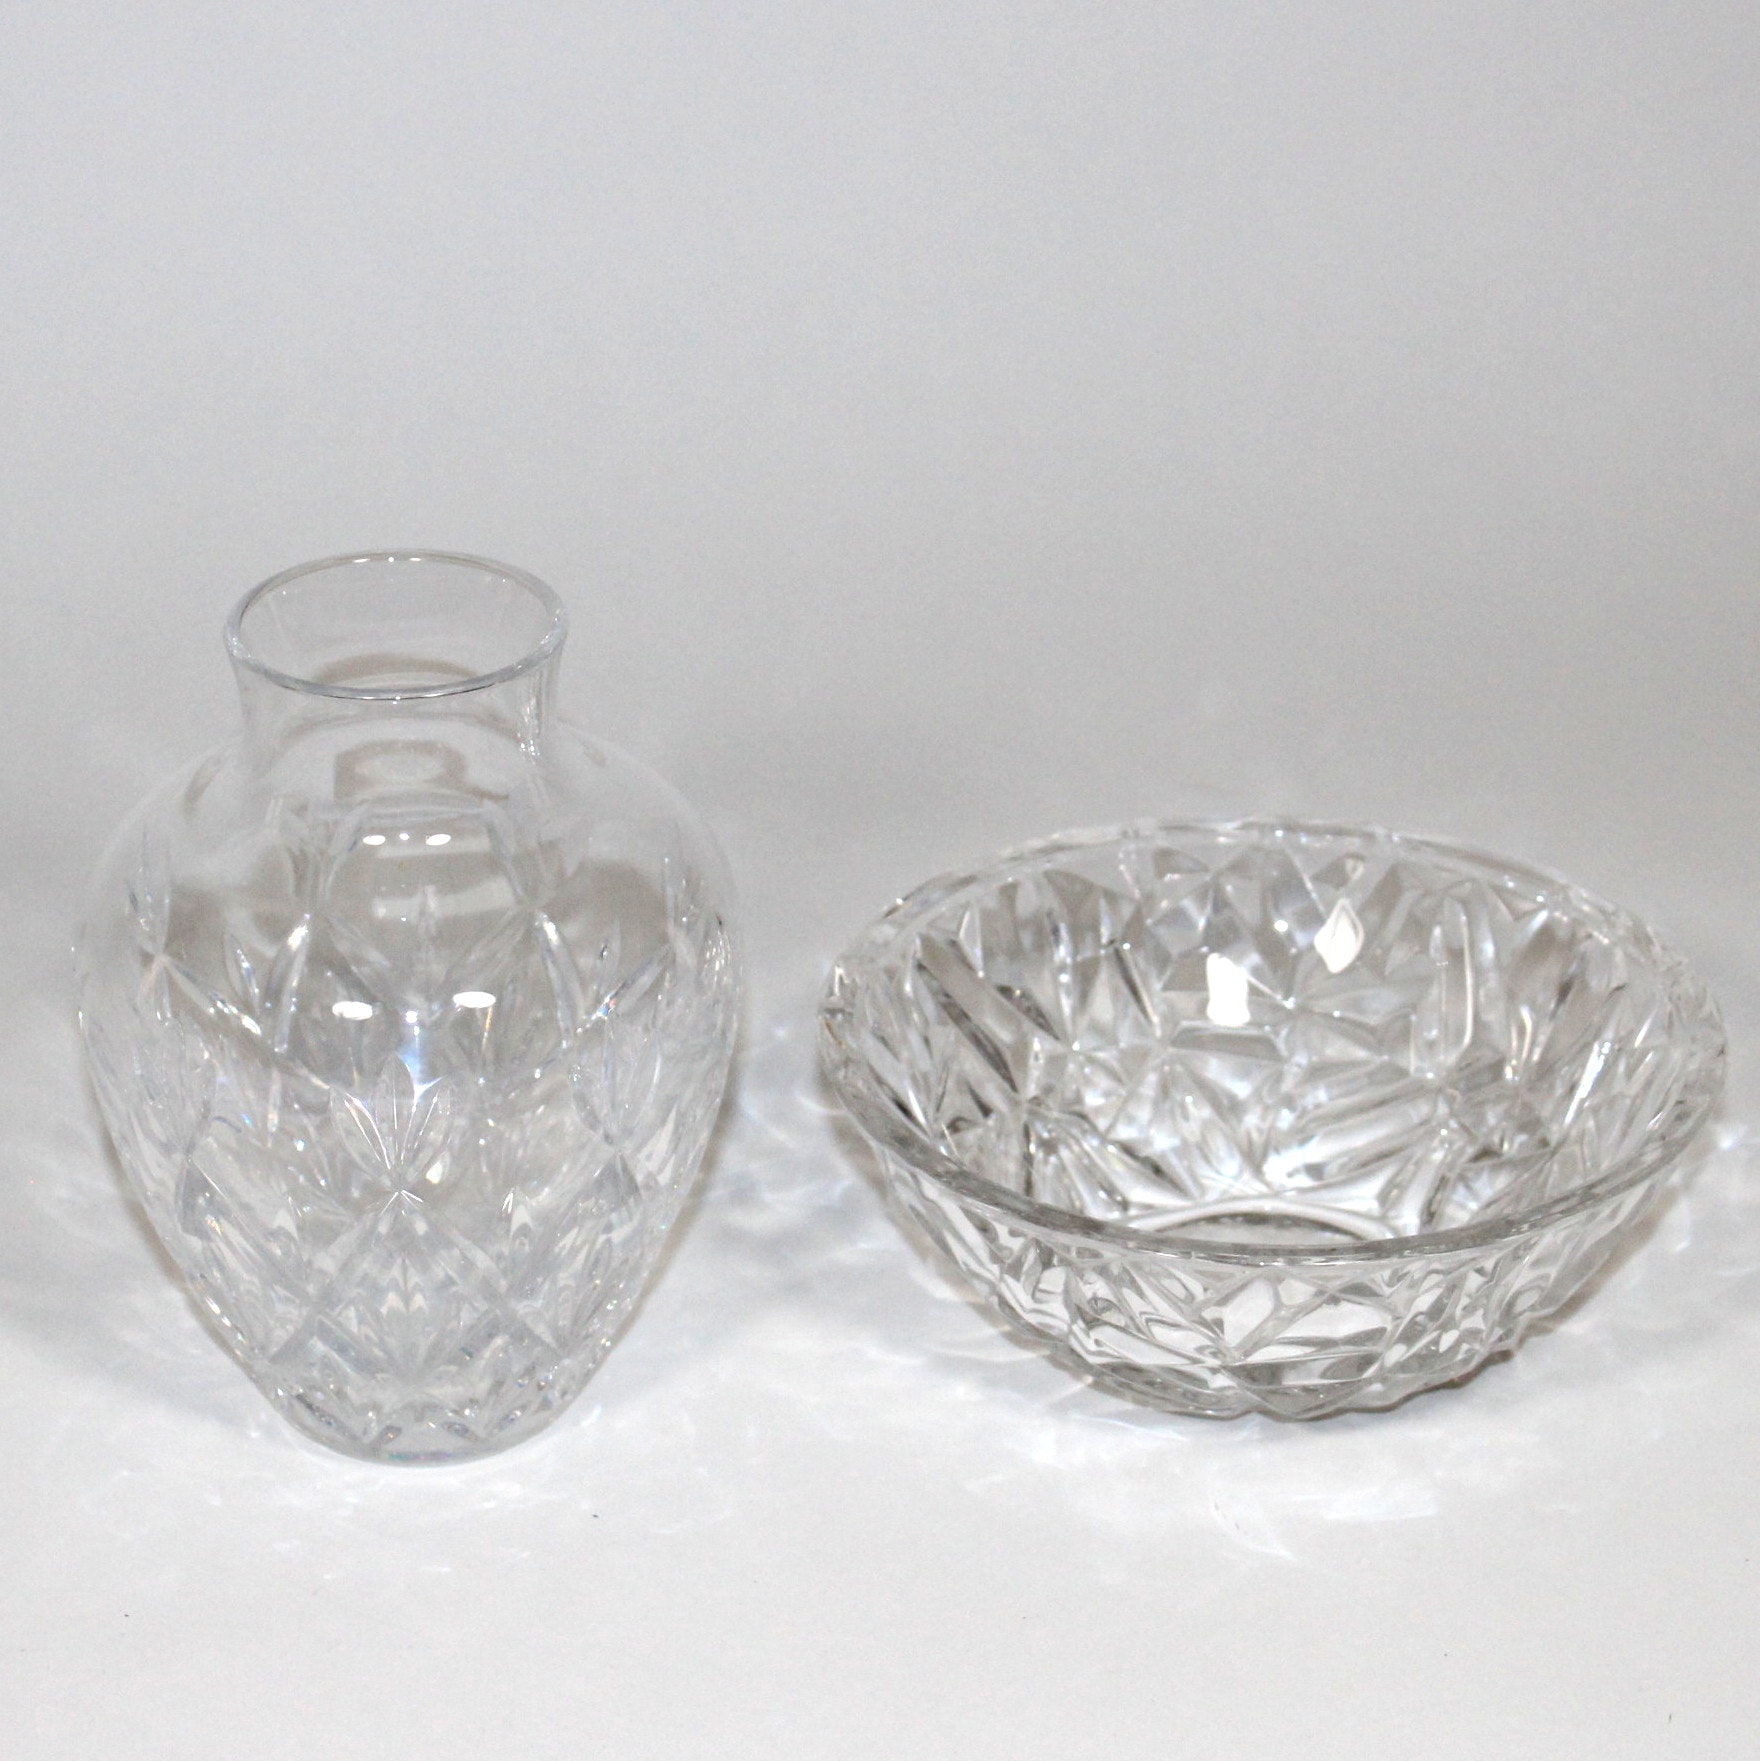 Crystal Bowl and Vase by Tiffany & Co.